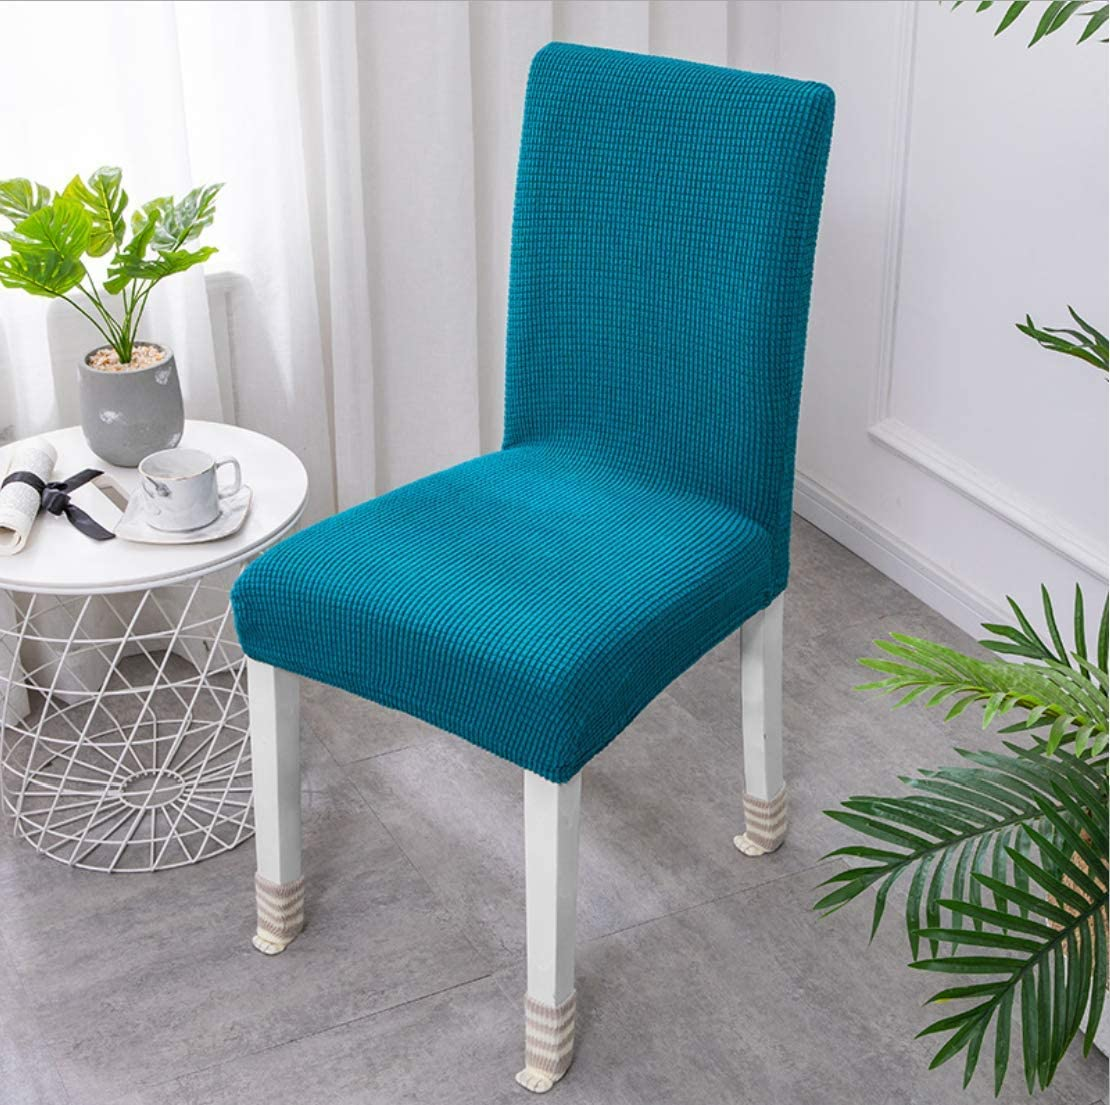 Chris.W 2Pack Stretch Dining Room Chair Slipcovers Sets, Elastic Chair Covers Removable Washable Bottom Chair Protector Cover for Banquet Wedding Party Hotel Ceremony(Peacock Blue)